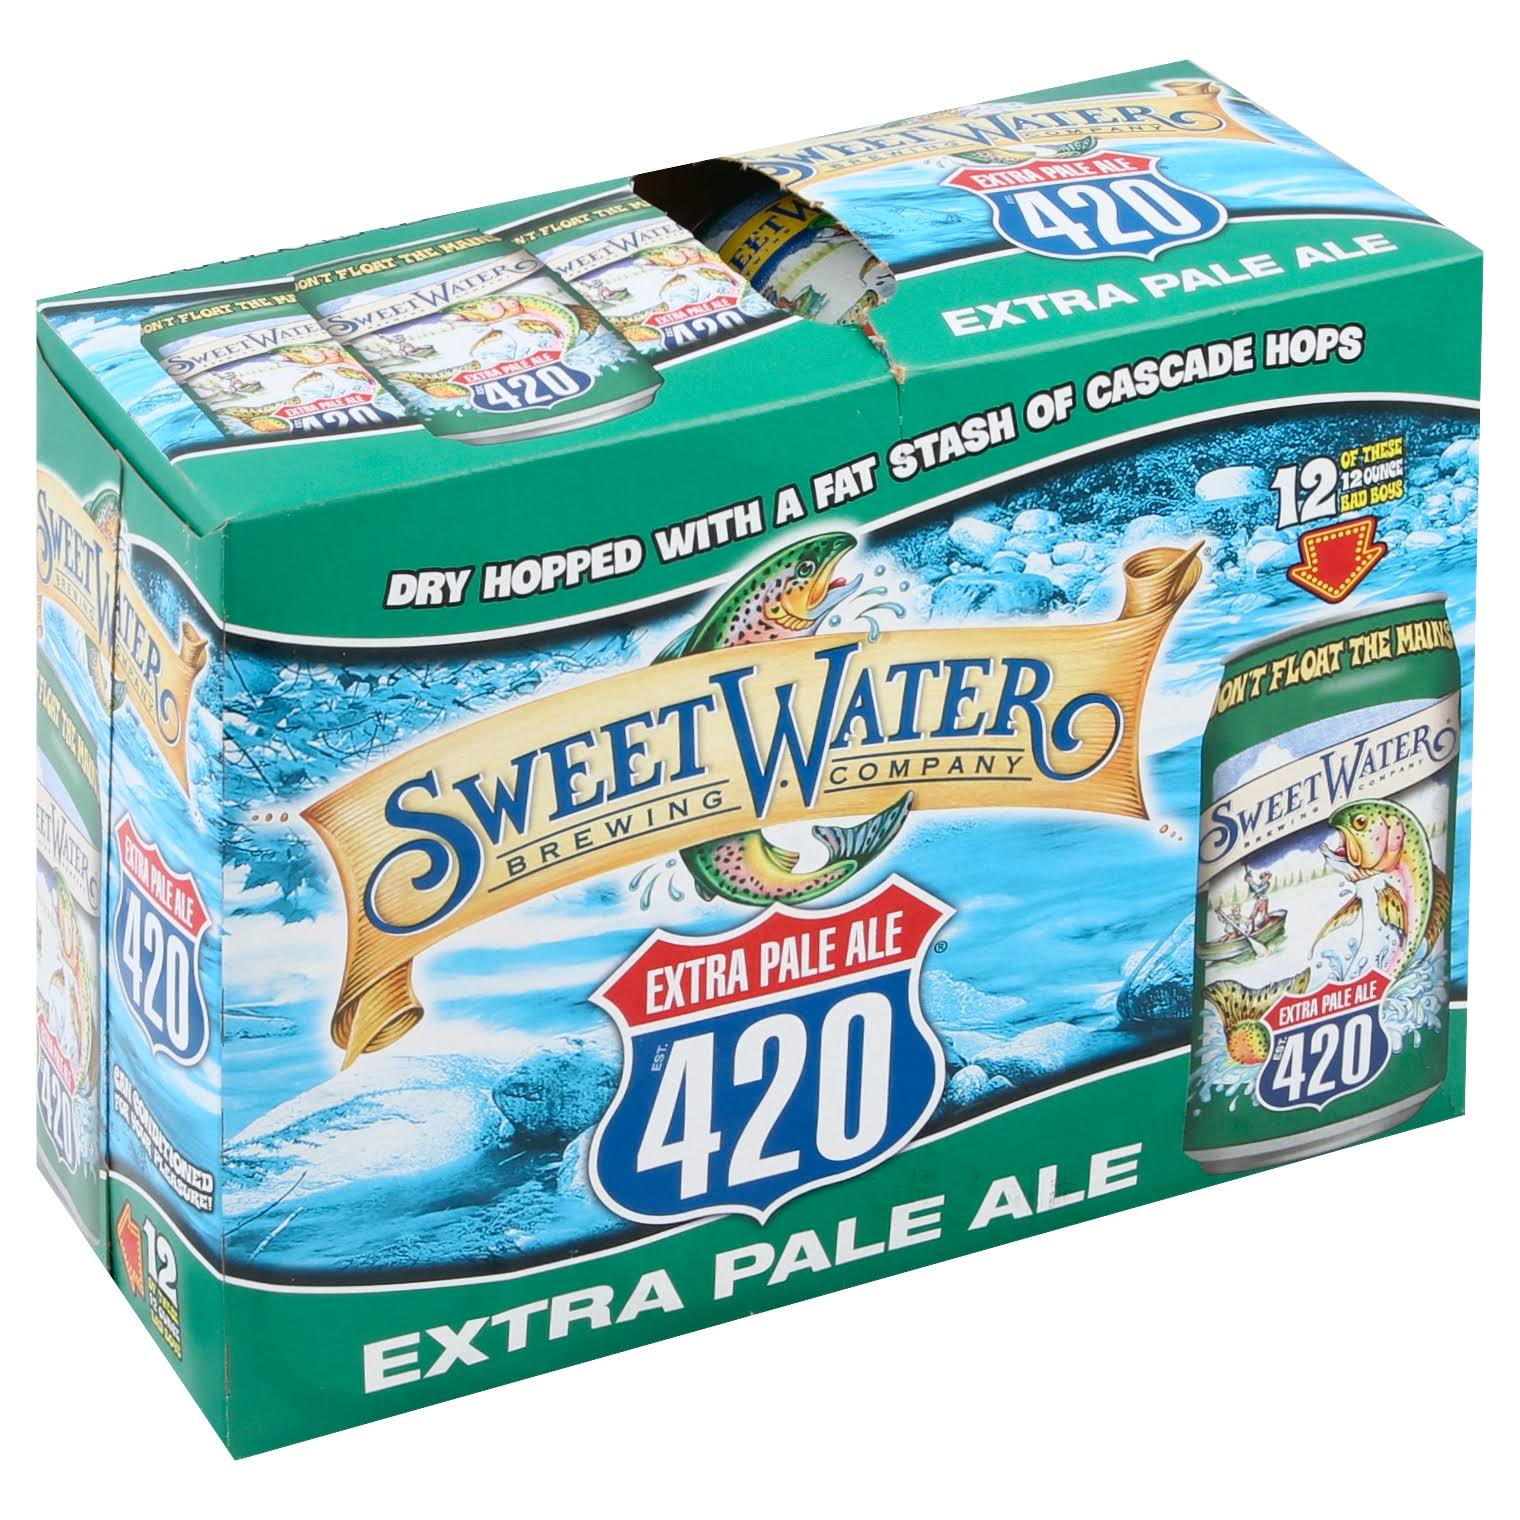 Sweetwater 420 Pale Ale - 12 pack, 12 fl oz cans